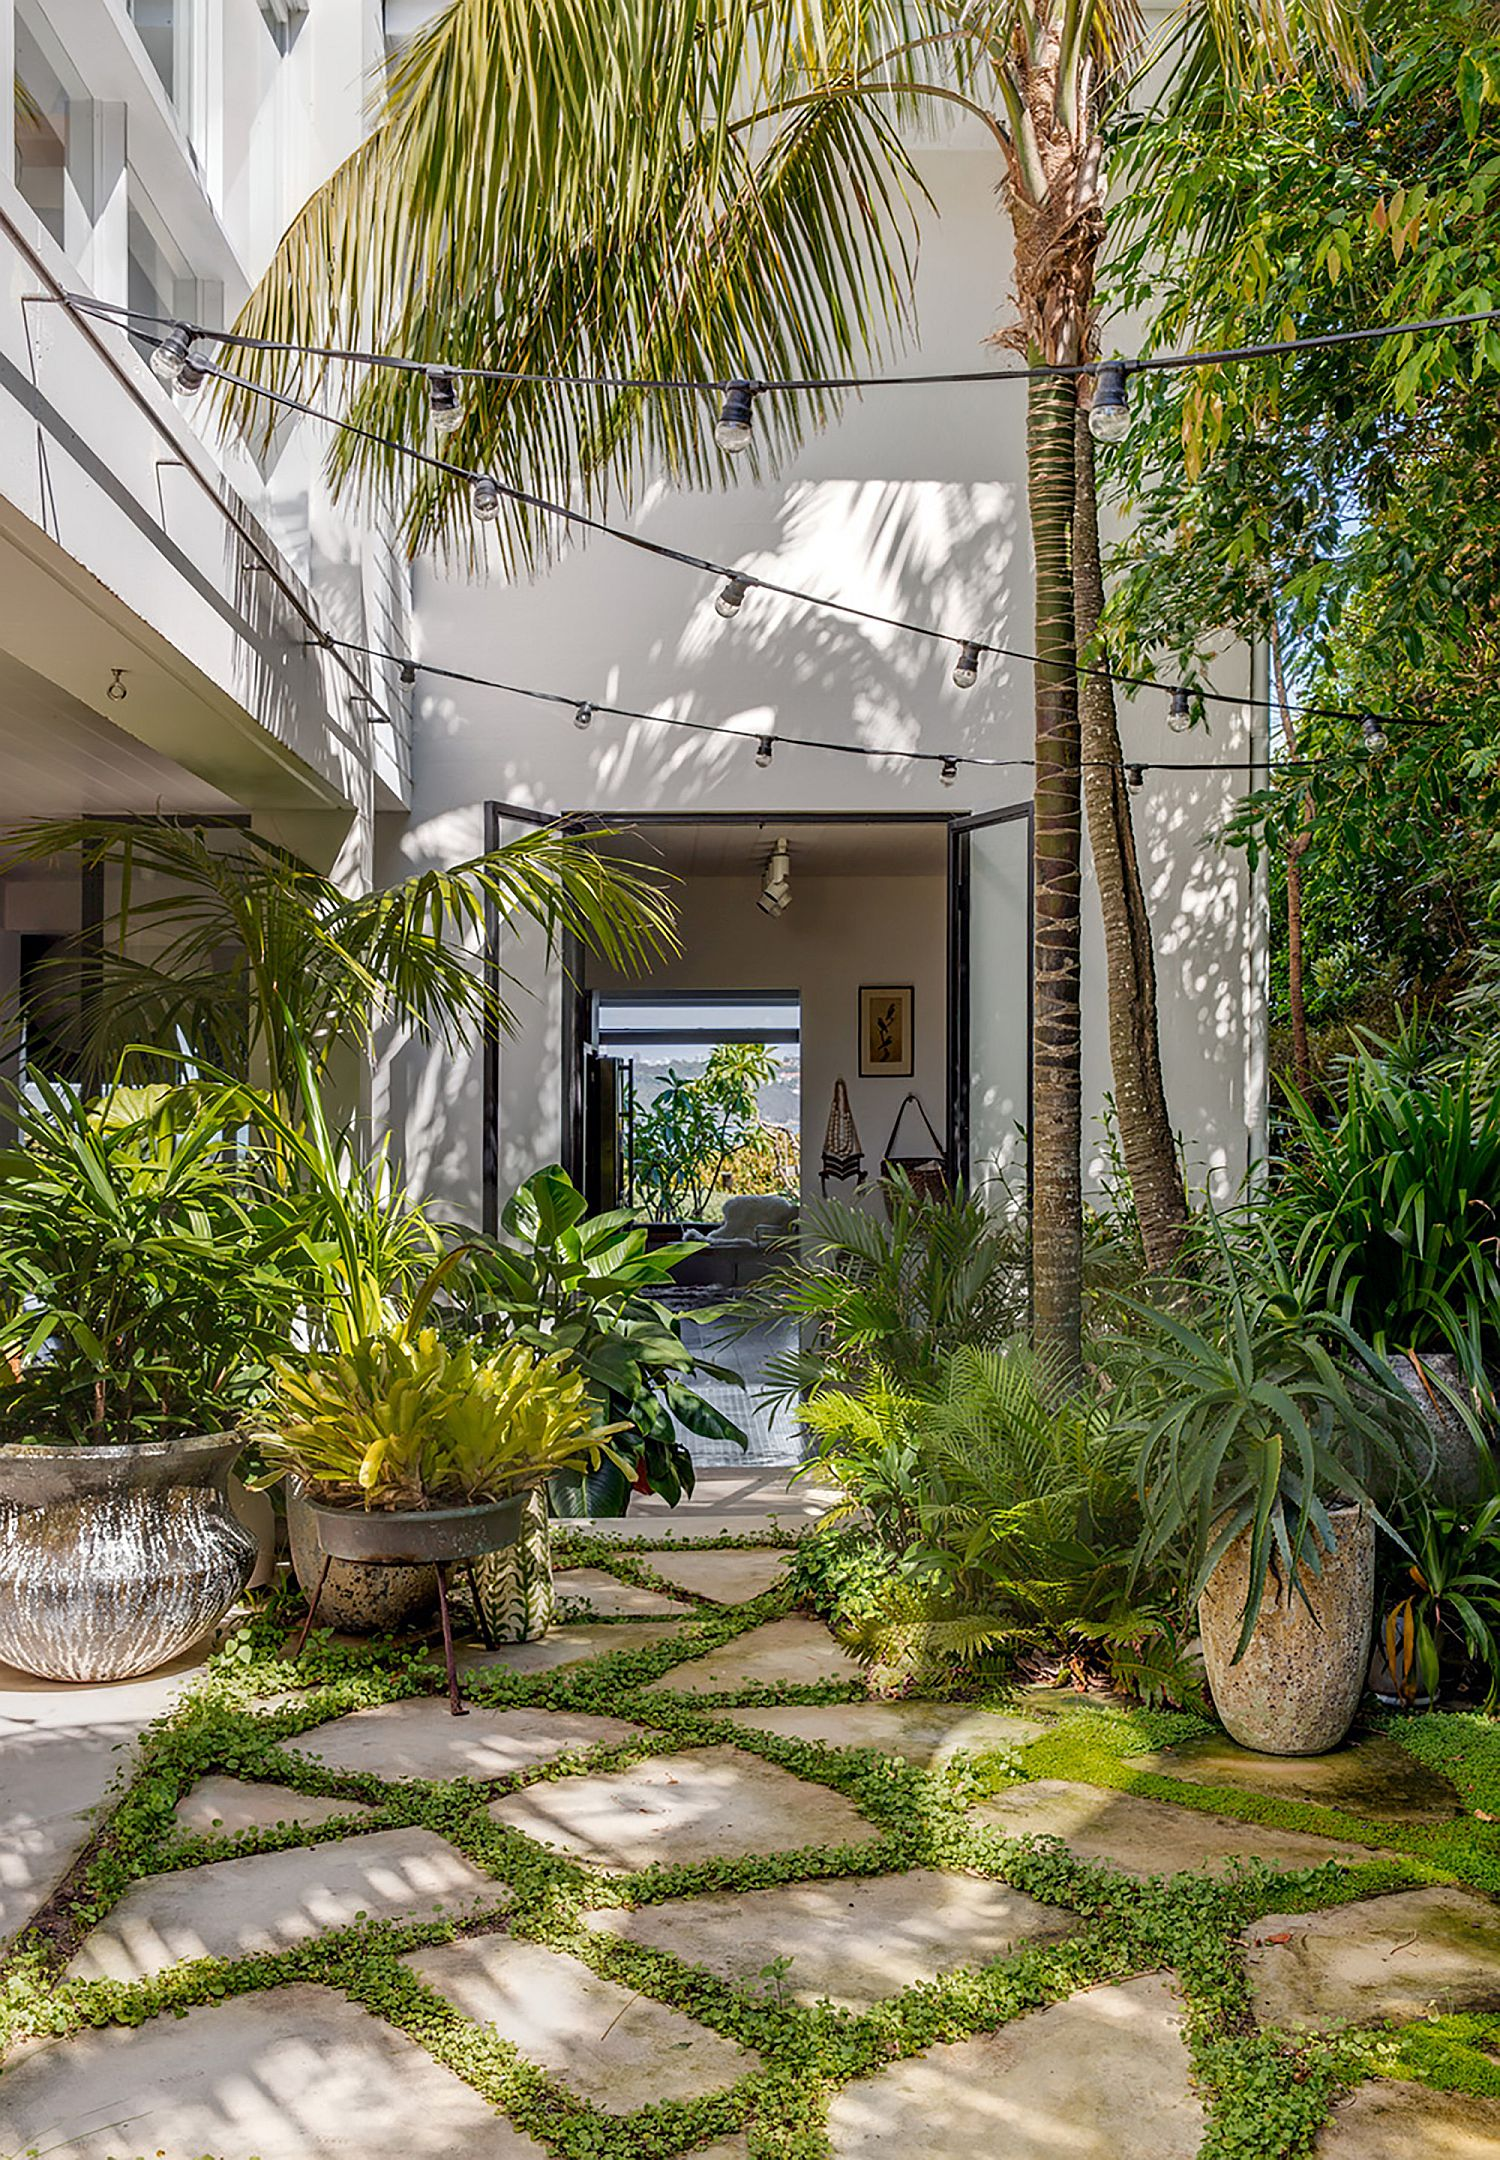 Curated landscape around the house promotes outdoor living